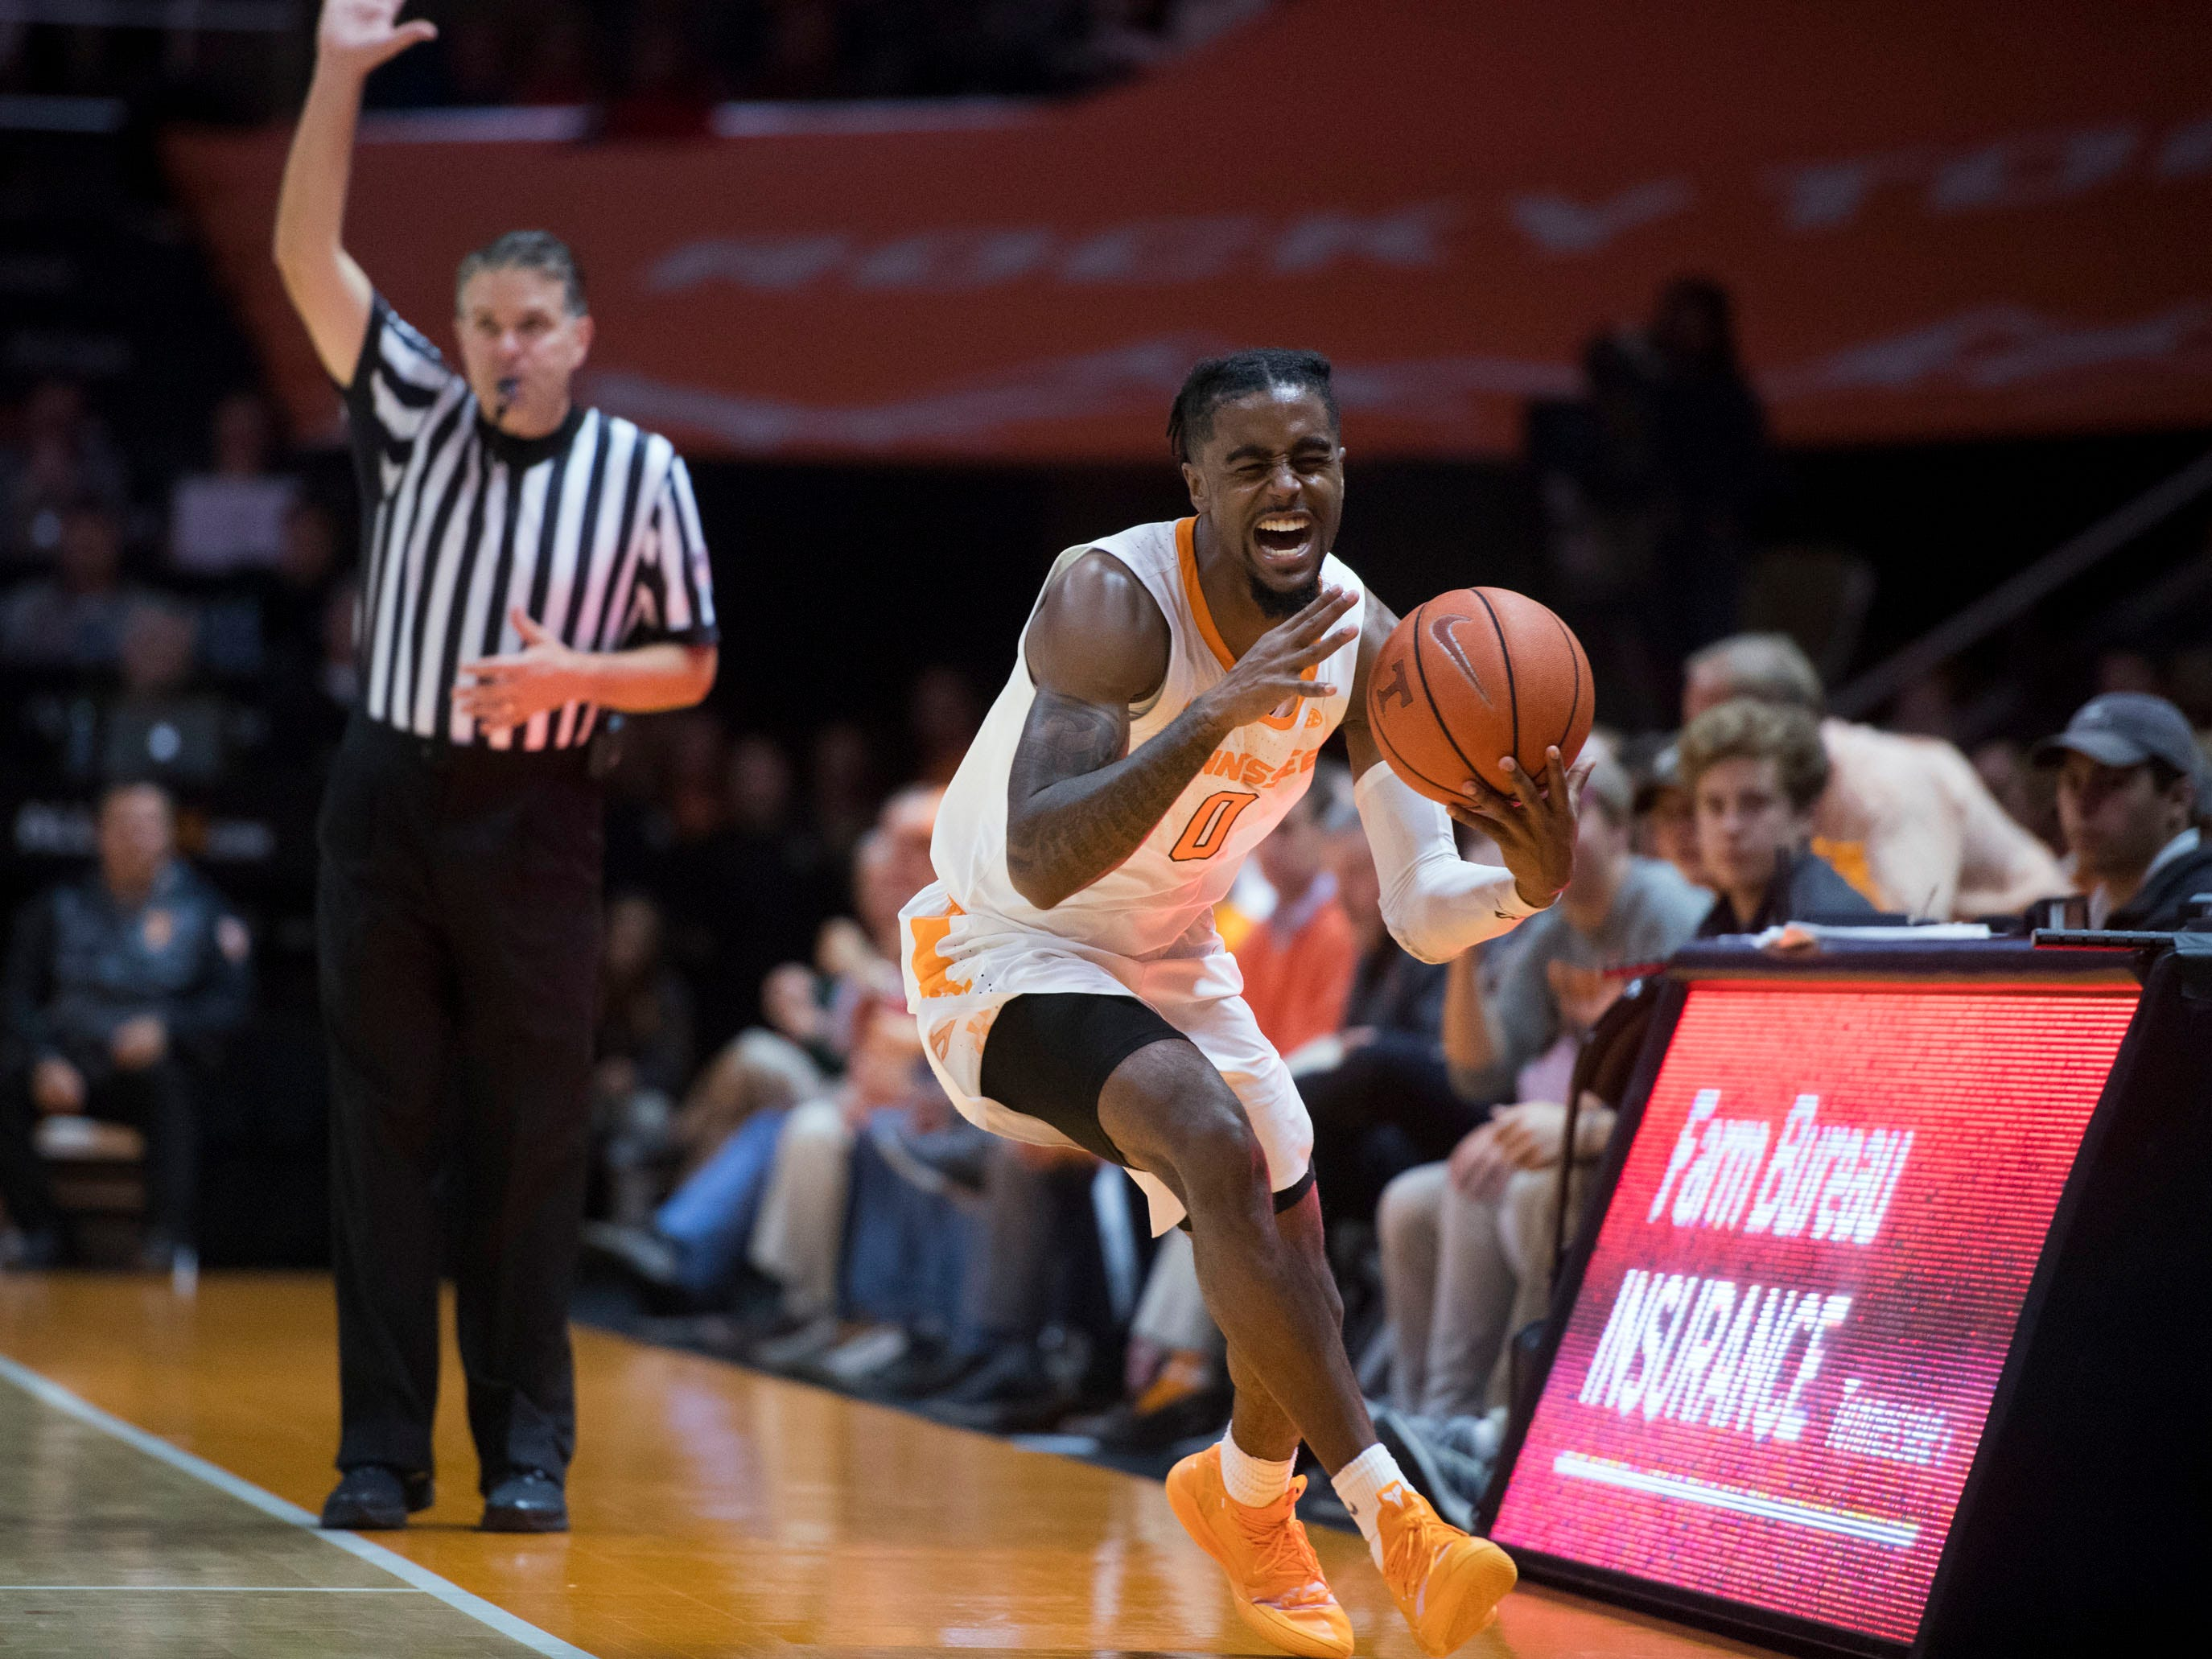 Tennessee's Jordan Bone (0) chases a ball out of bounds during the game against Georgia Tech on Tuesday, November 13, 2018.